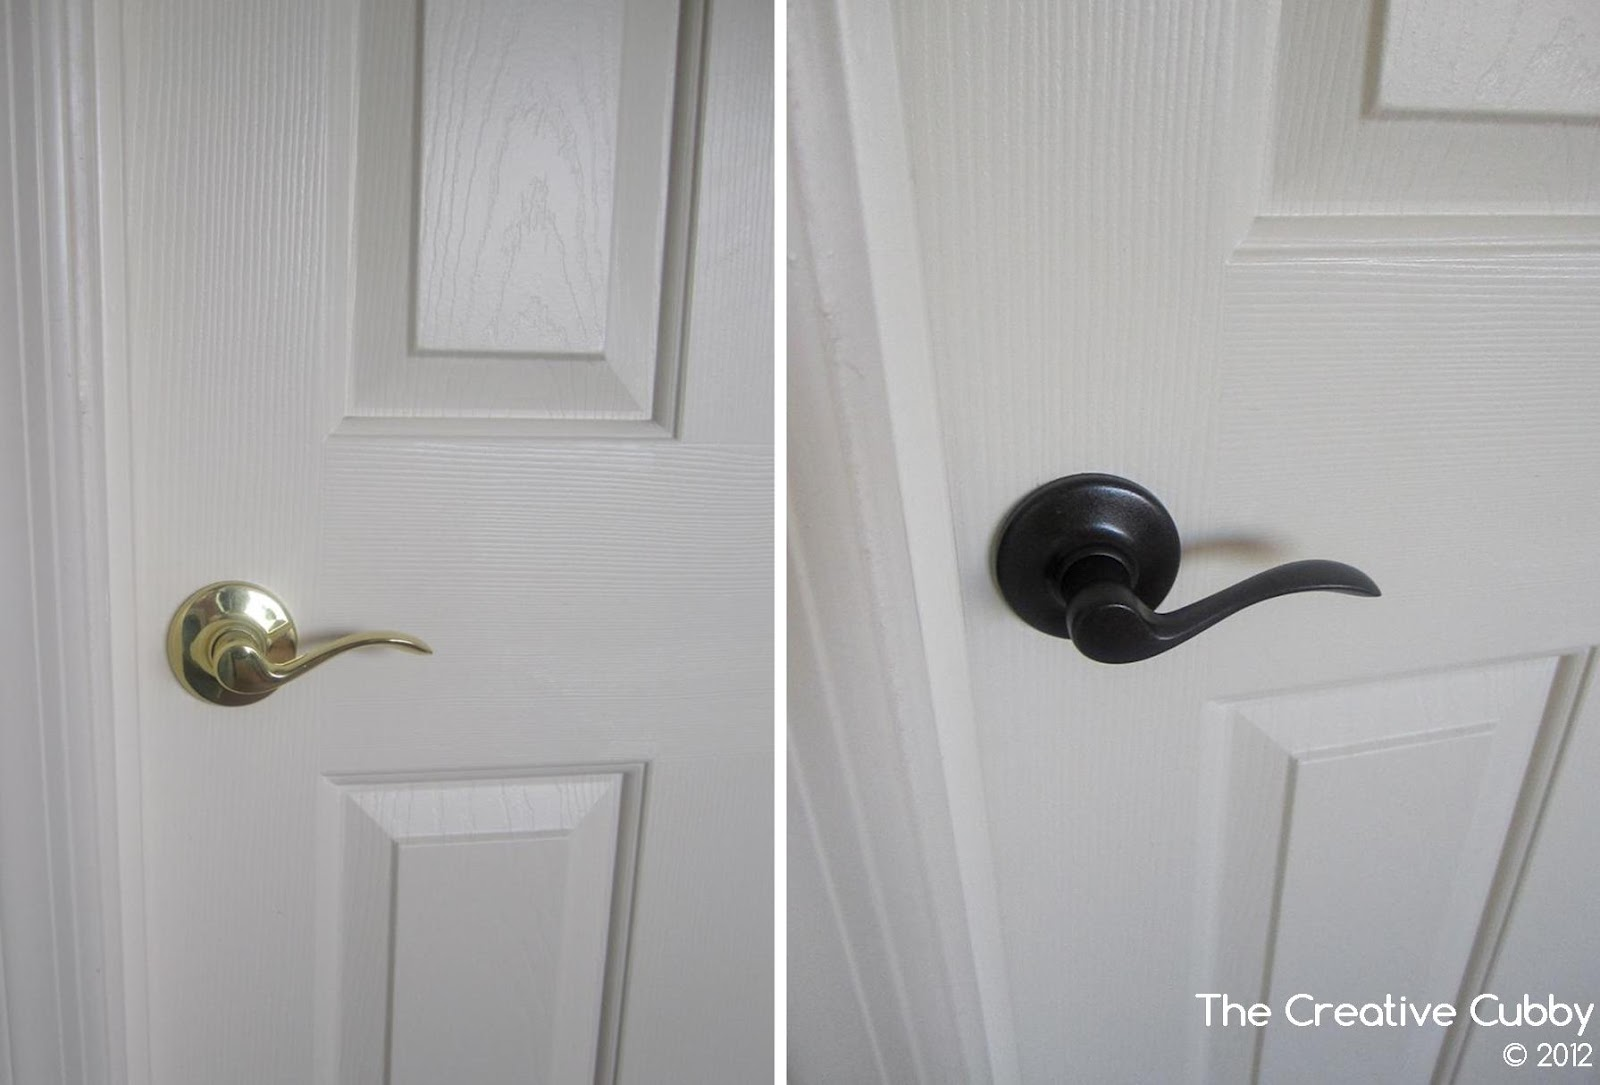 The Creative Cubby Diy Door Handle Upgrade